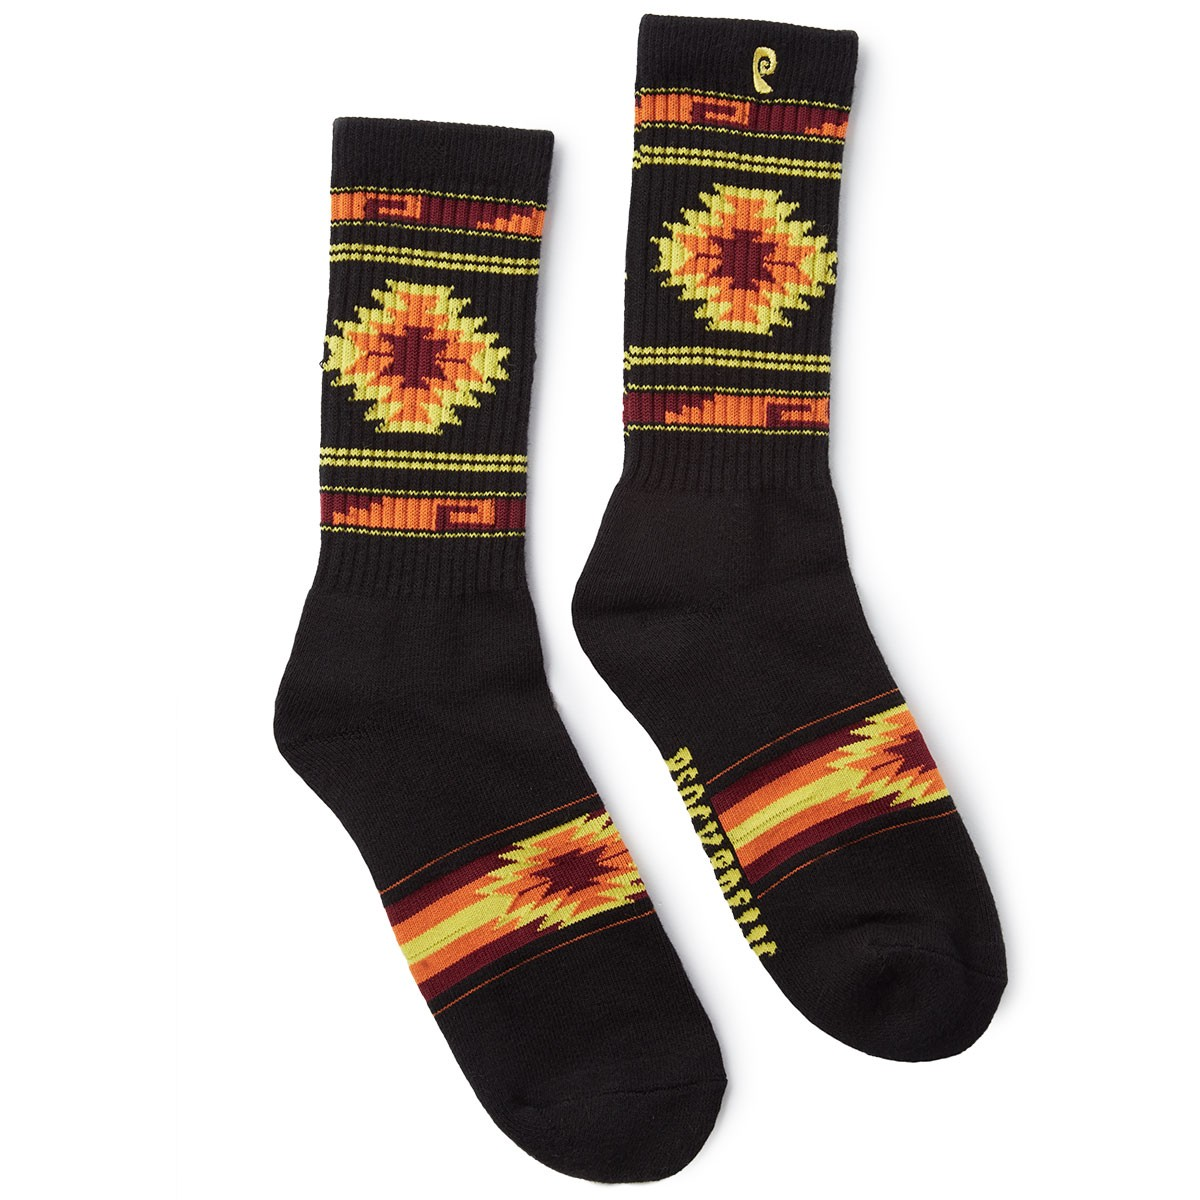 Psockadelic Slash Socks - Black/Orange/Yellow